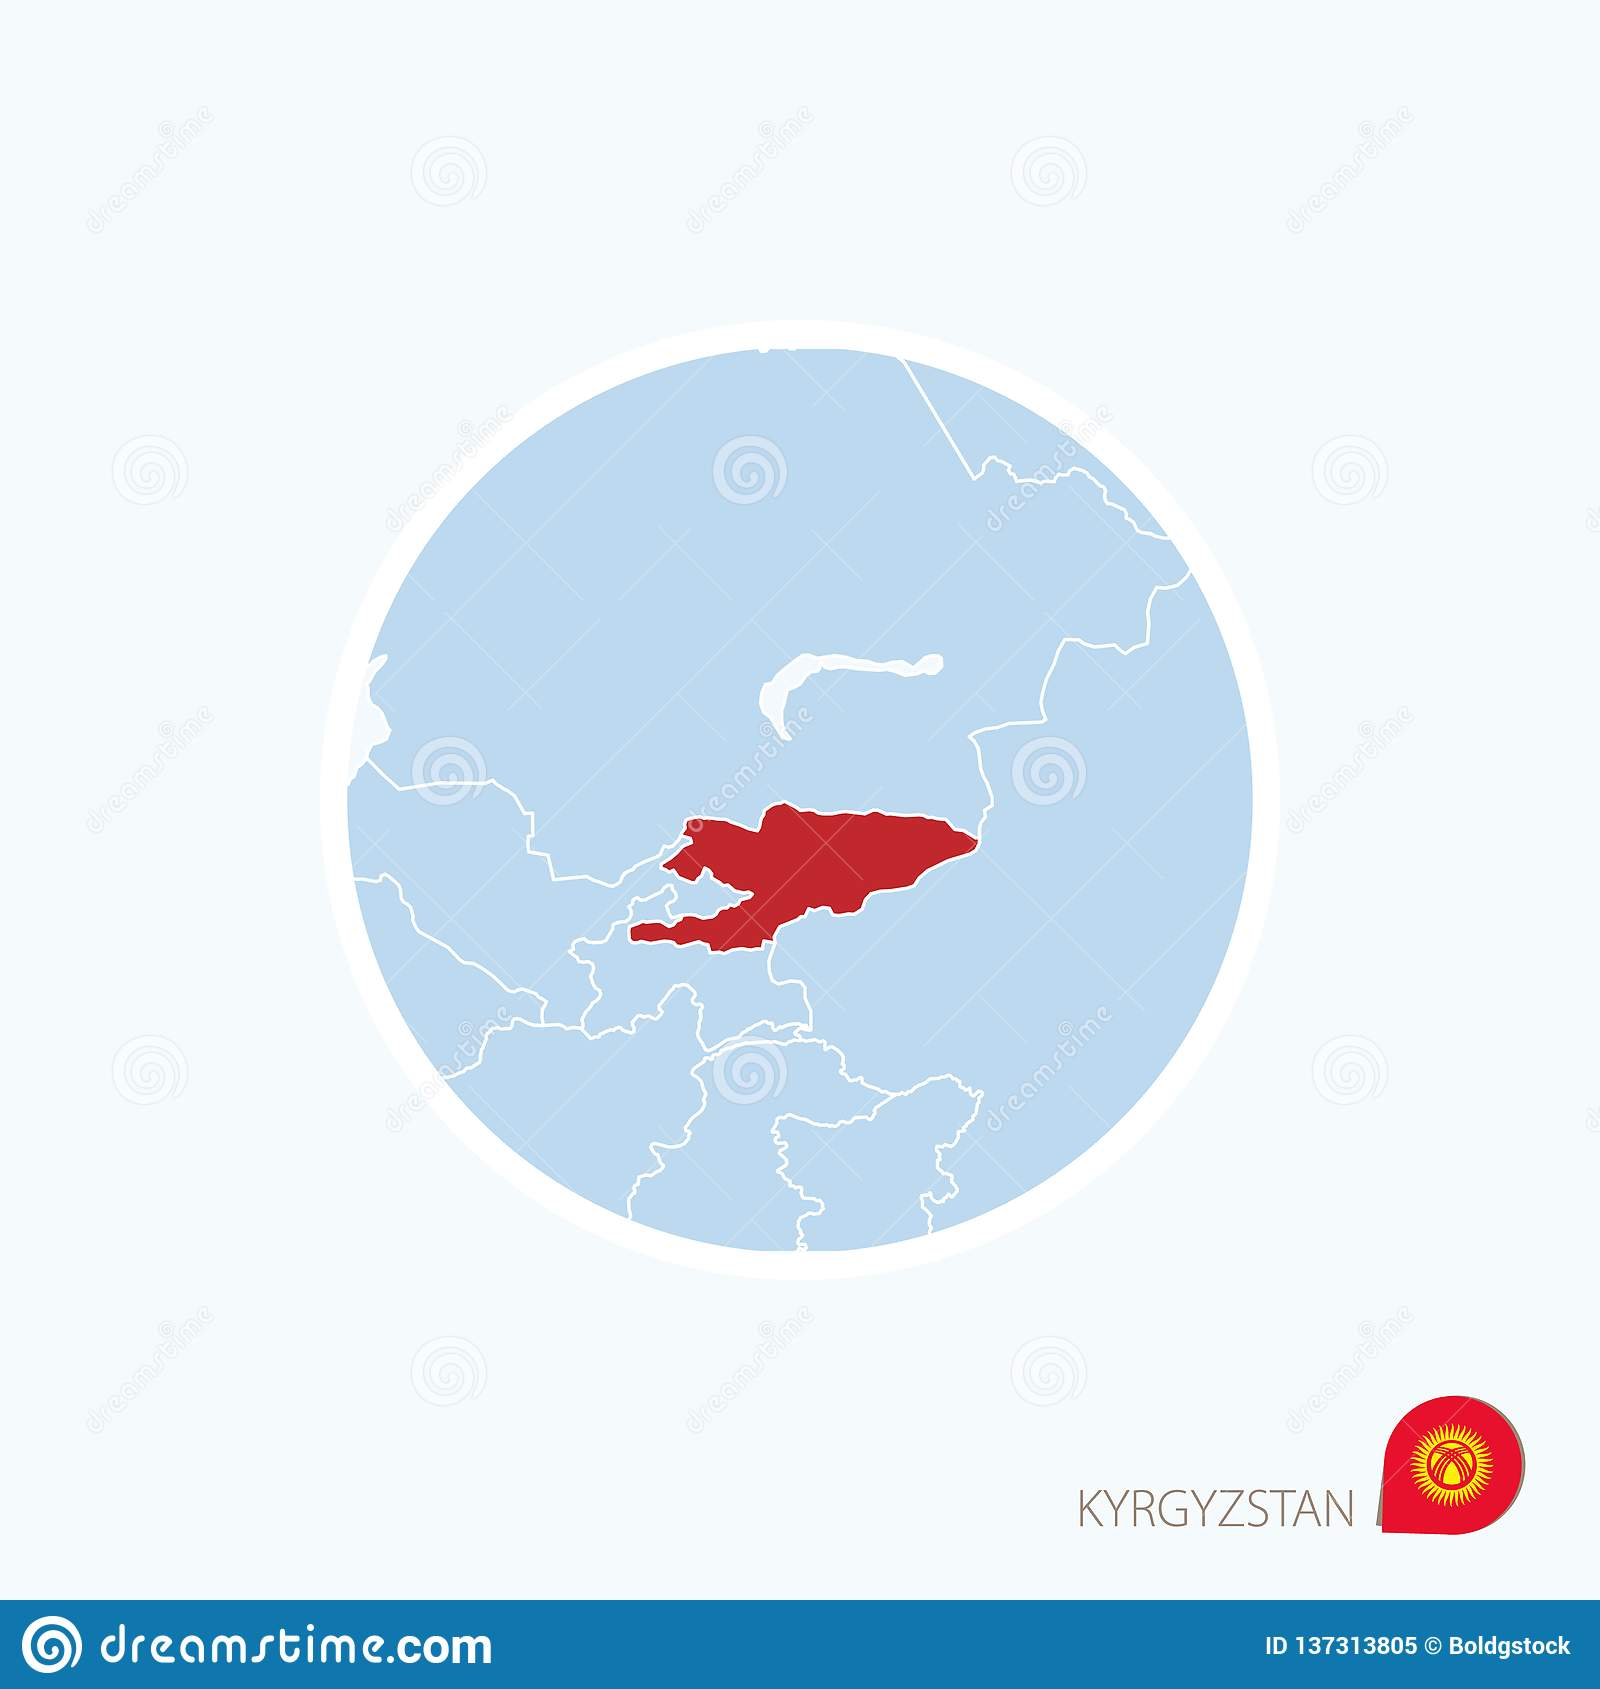 Map Of Asia Kyrgyzstan.Map Icon Of Kyrgyzstan Blue Map Of Asia With Highlighted Kyrgyzstan